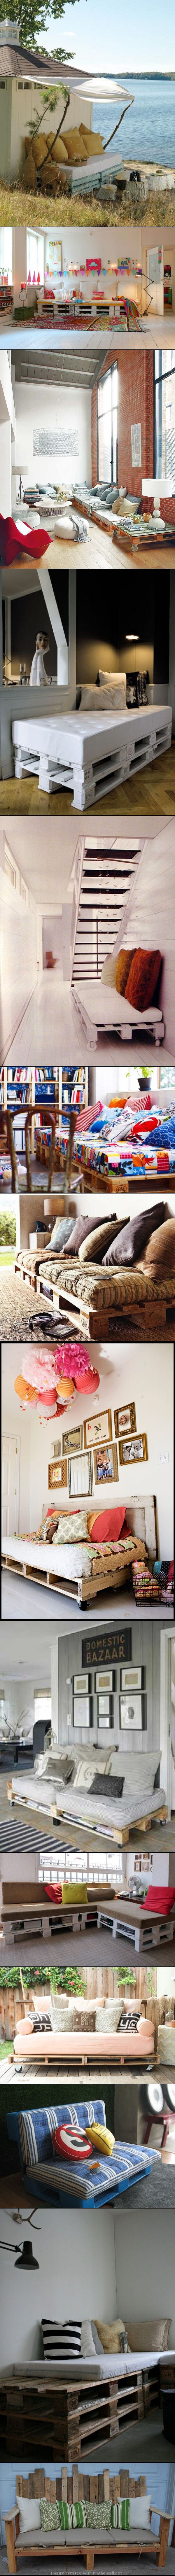 DIY-Home-Decor: Home Decor DIY TOP-15 PALLET SOFA IDEAS